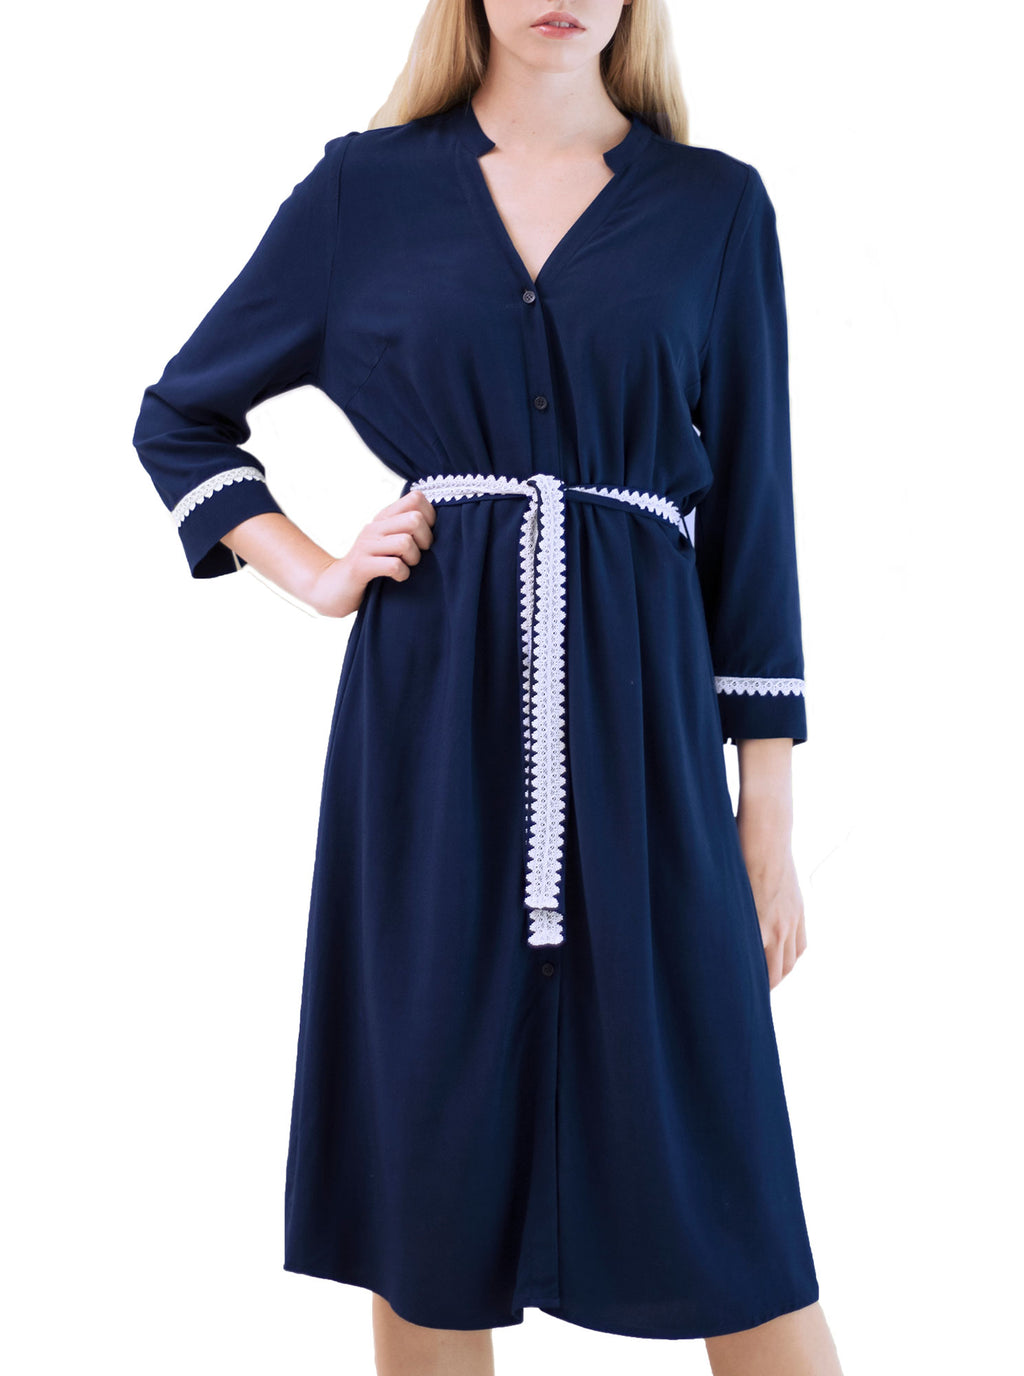 SORGO Navy Blue Bamboo Shirt Dress